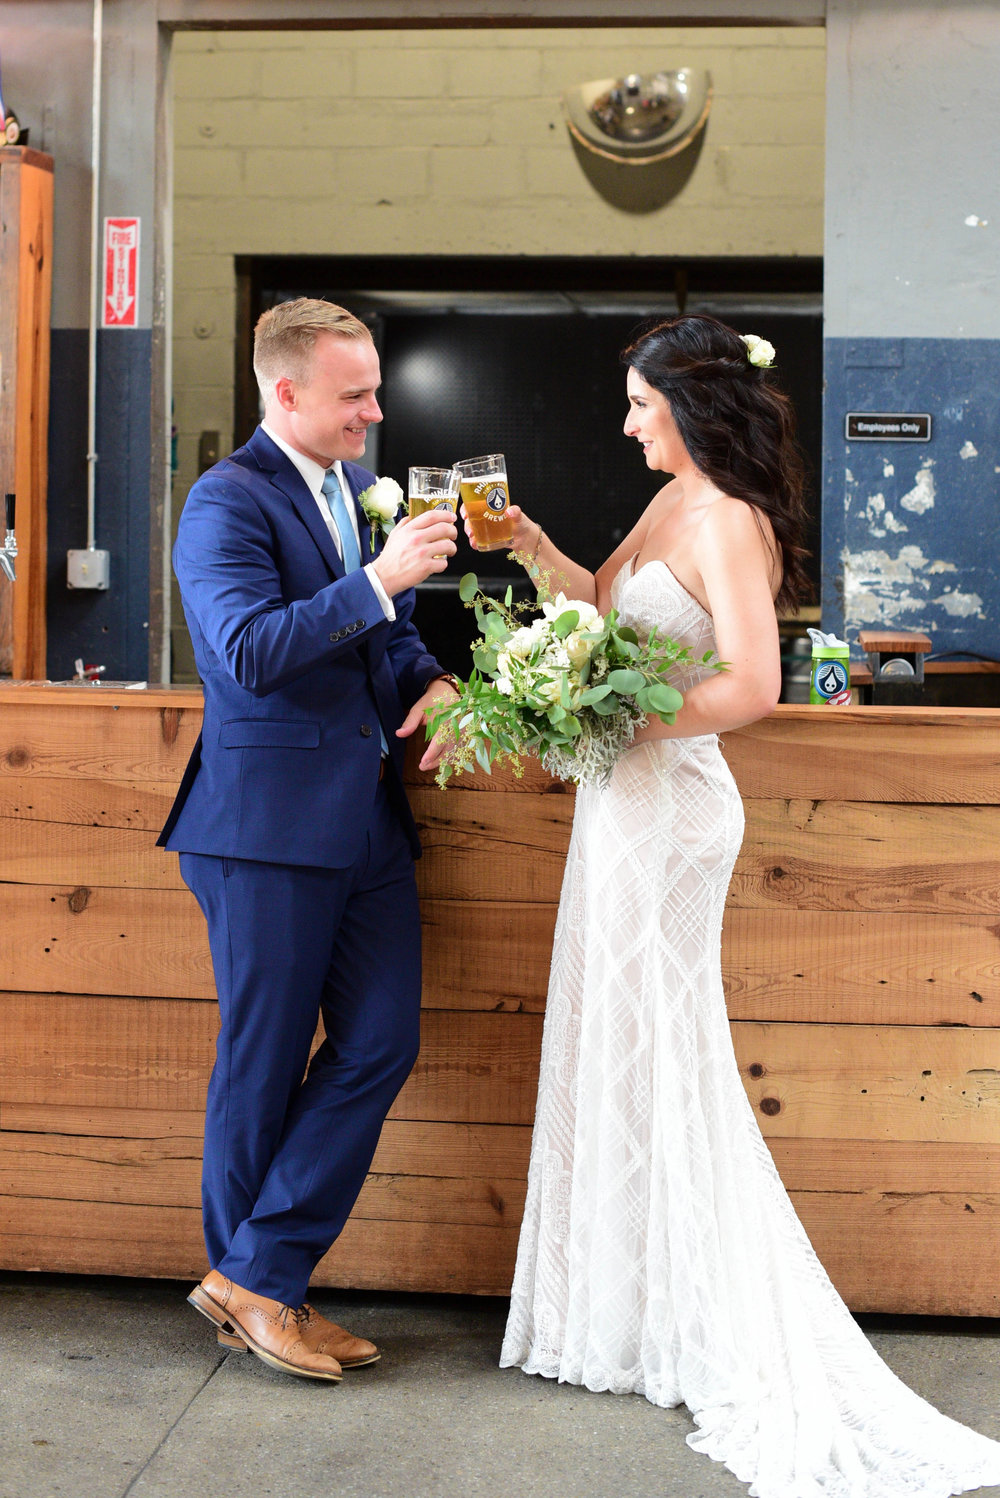 RHINGEIST WEDDING, RHINEGEIST BREWERY, CINCINNATI WEDDING, CINCY WEDDING, CINCINNATI WEDDING PLANNER, CINCINNATI WEDDING COORDINATOR, CINCY BRIDE